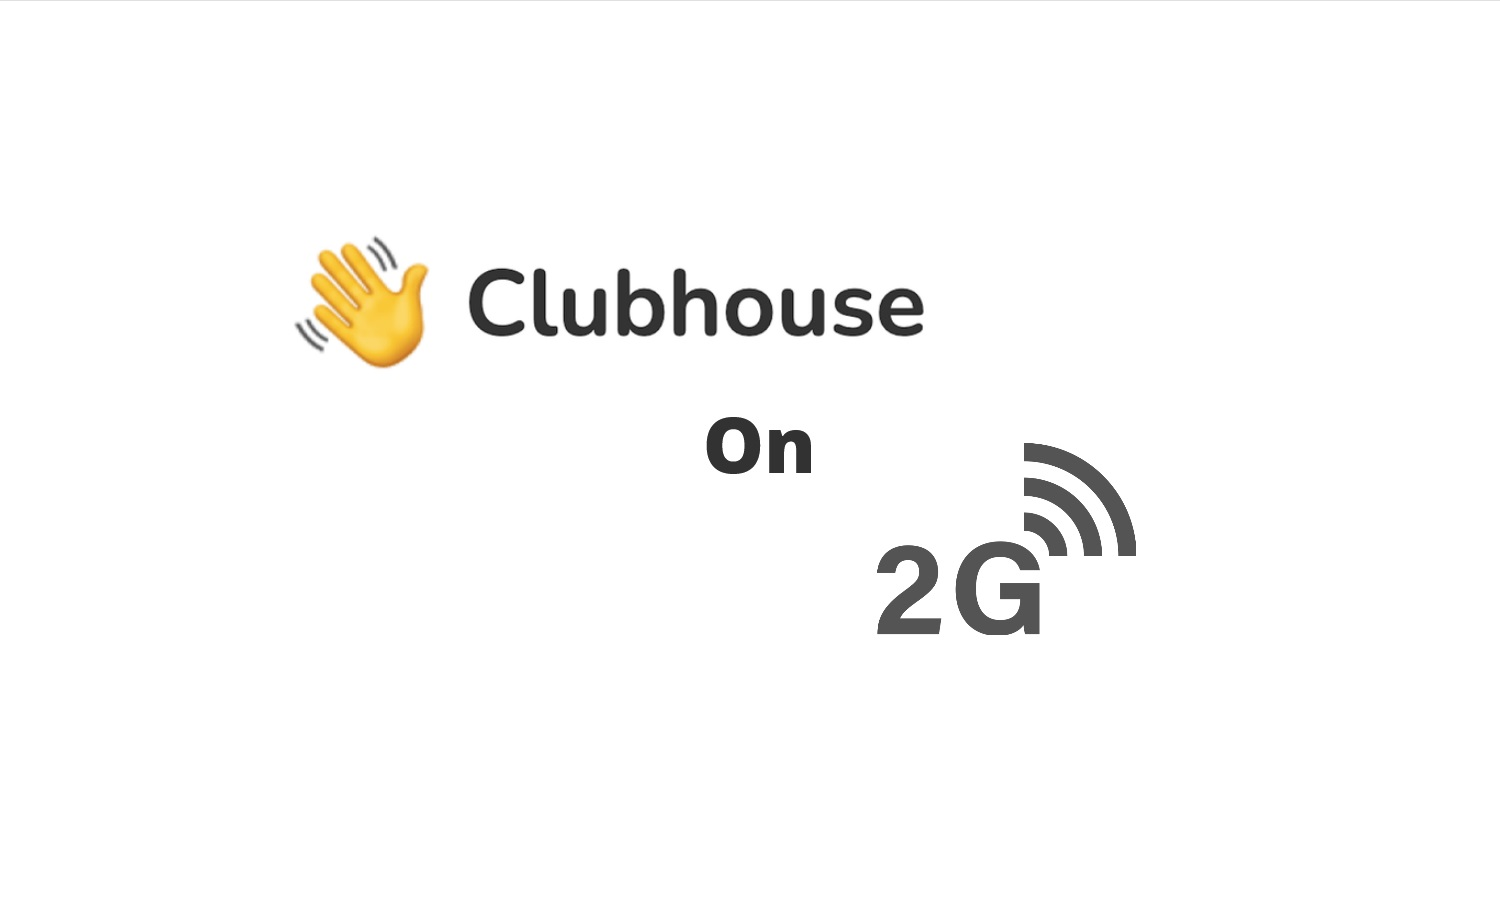 Clubhouse streaming on 2G